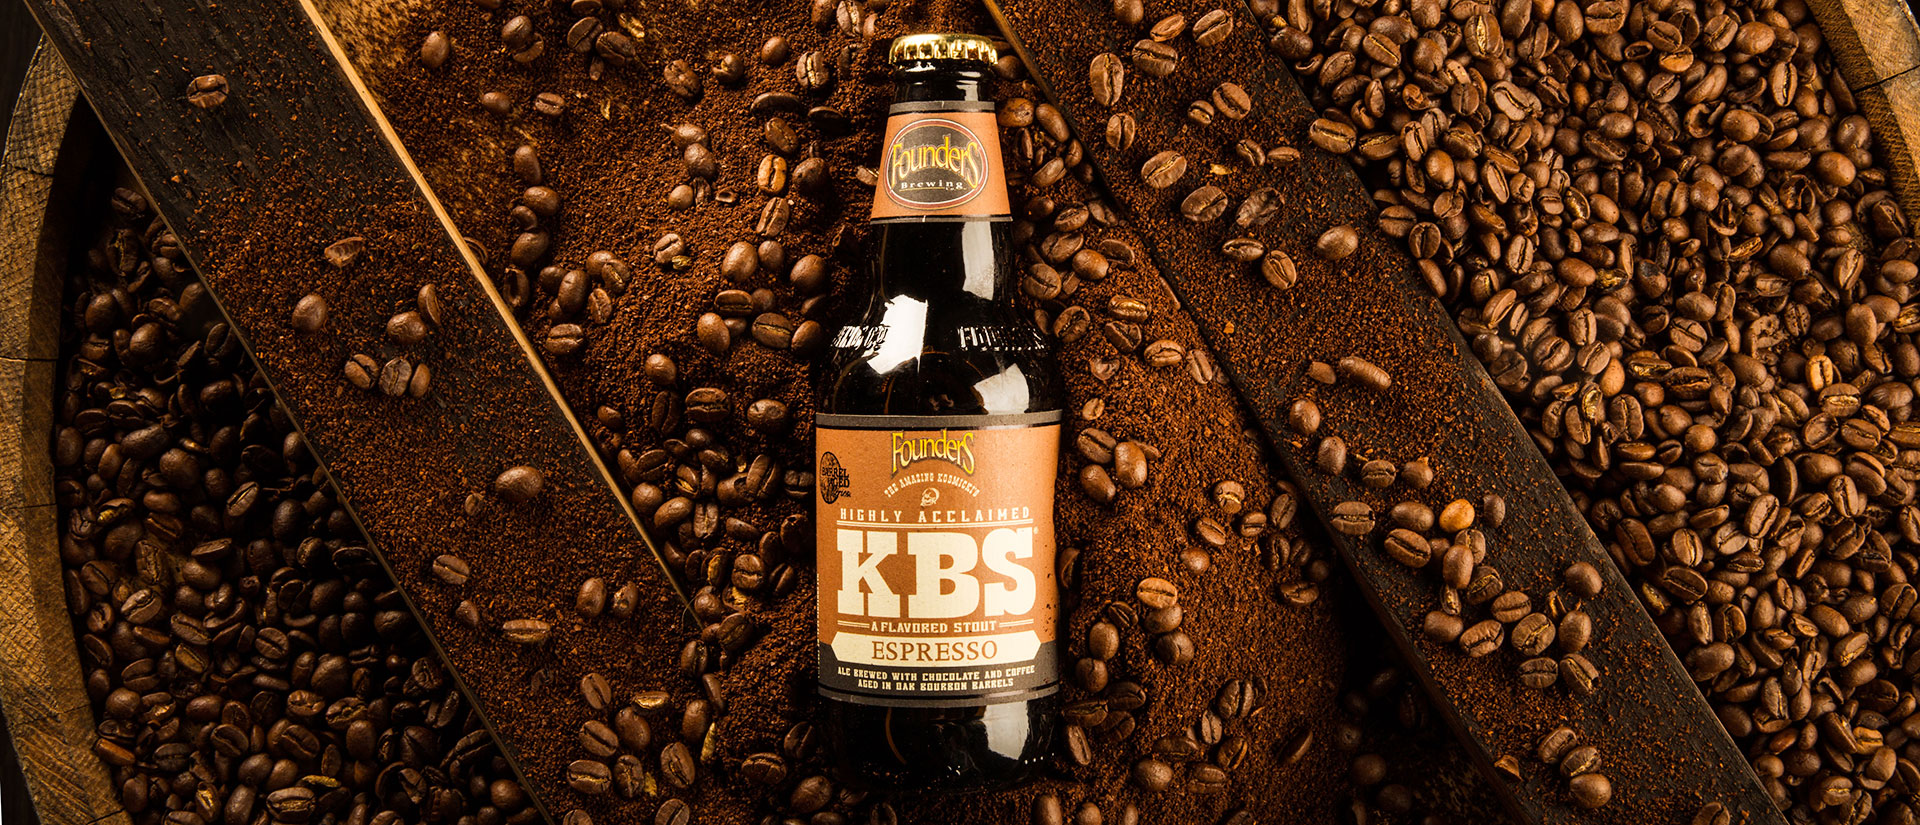 kbs espresso bottle laying on espresso beans